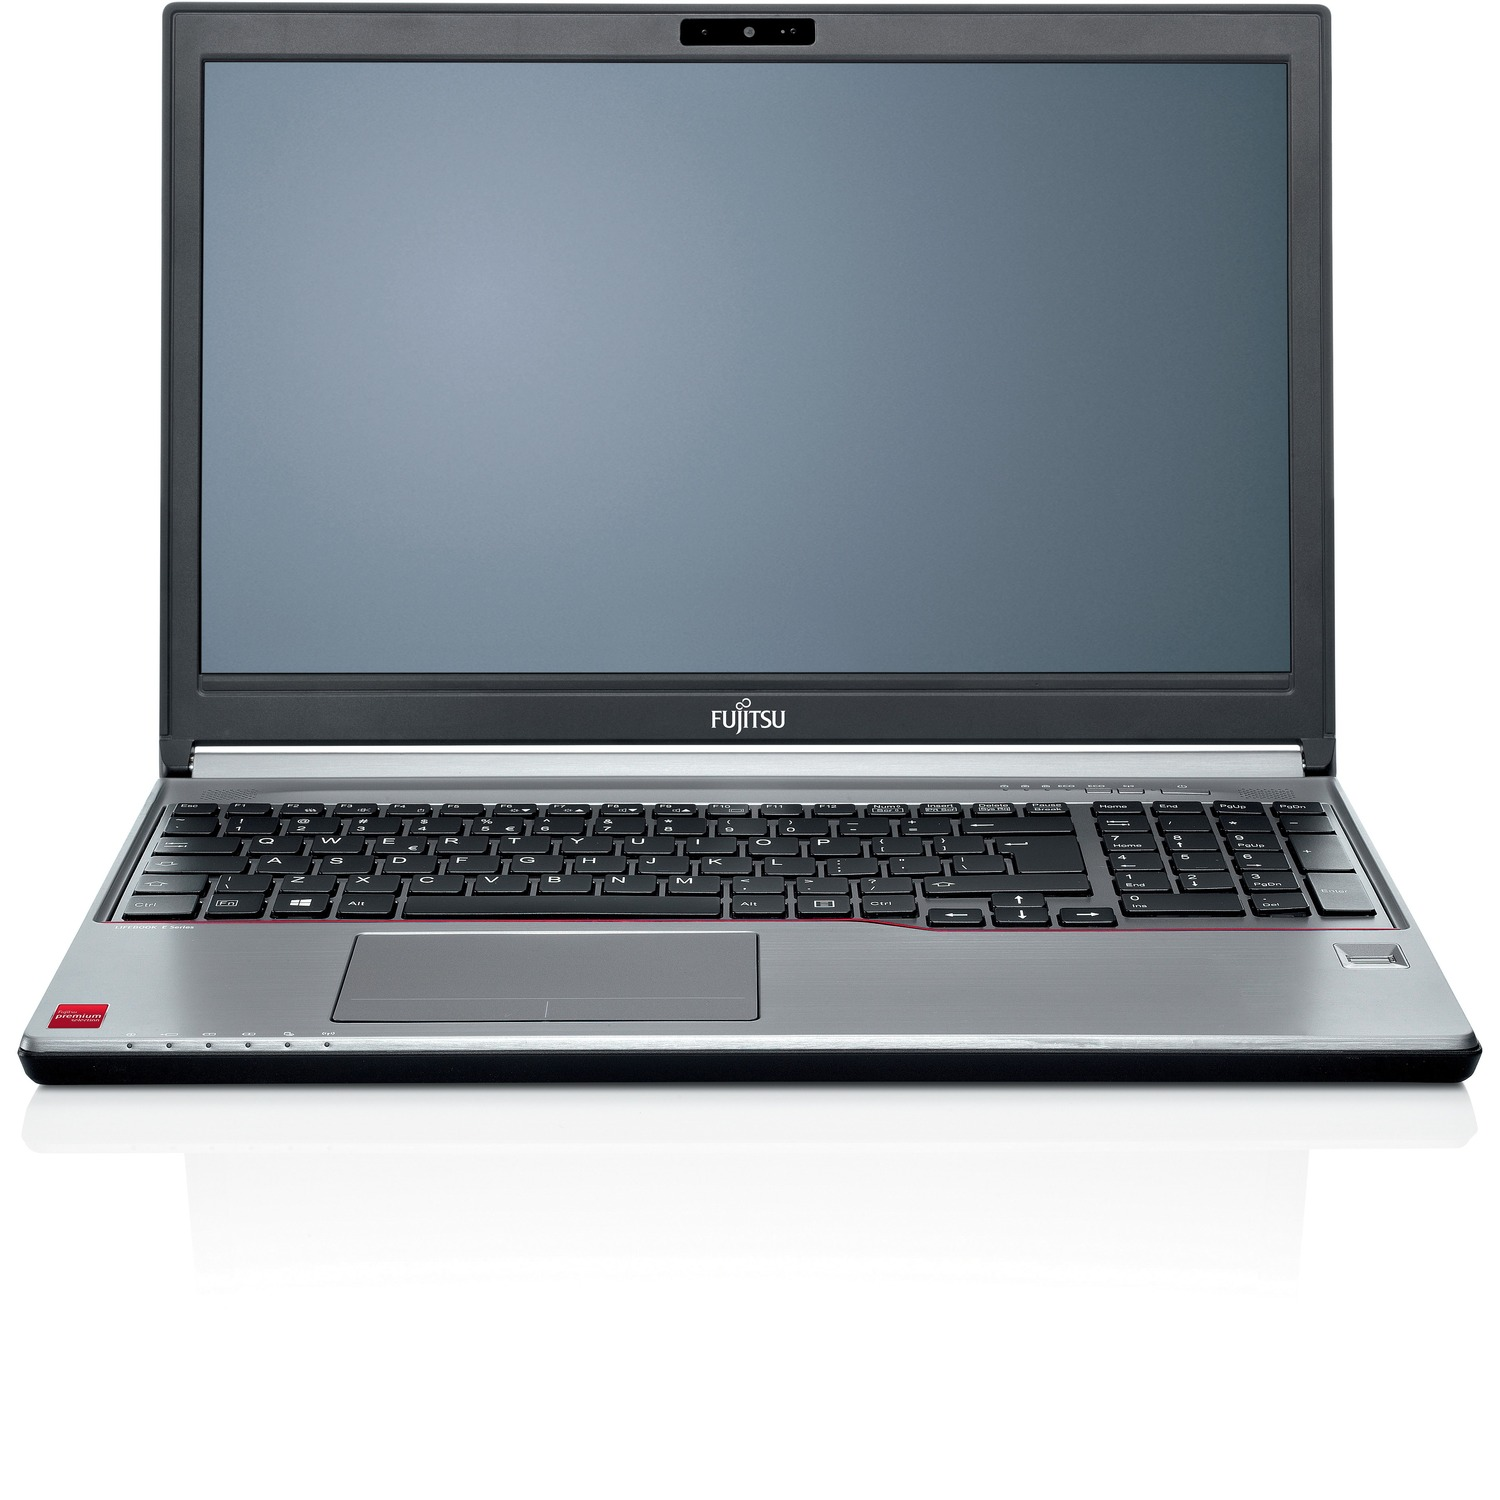 Fujitsu LIFEBOOK E756 39.6 cm 15.6inch LCD Notebook - Intel Core i7 6th Gen i7-6500U Dual-core 2 Core 2.50 GHz - 8 GB DDR4 SDRAM - 256 GB SSD - Windows 10 Pro 64-